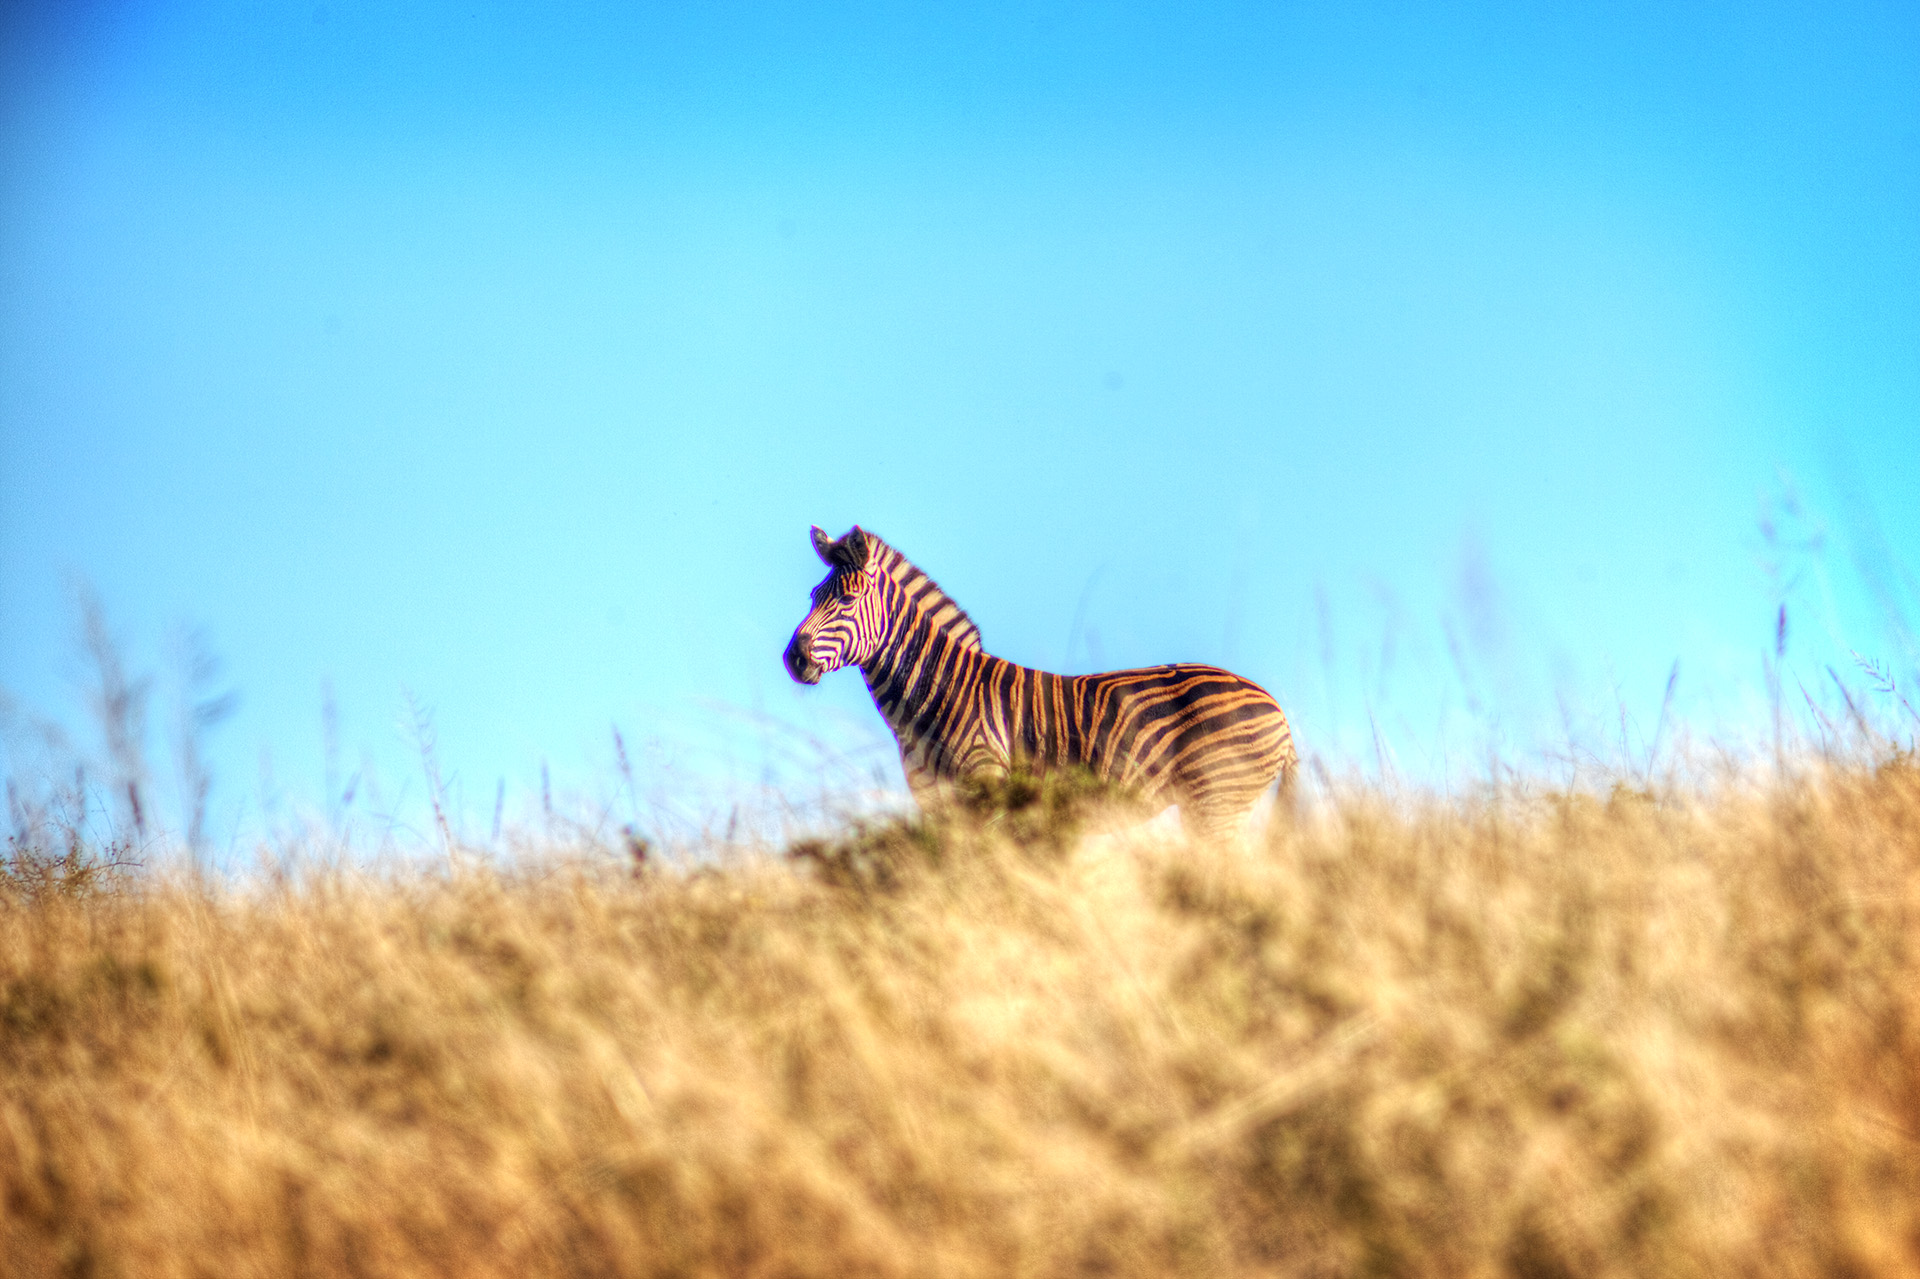 A zebra walking through the plains.